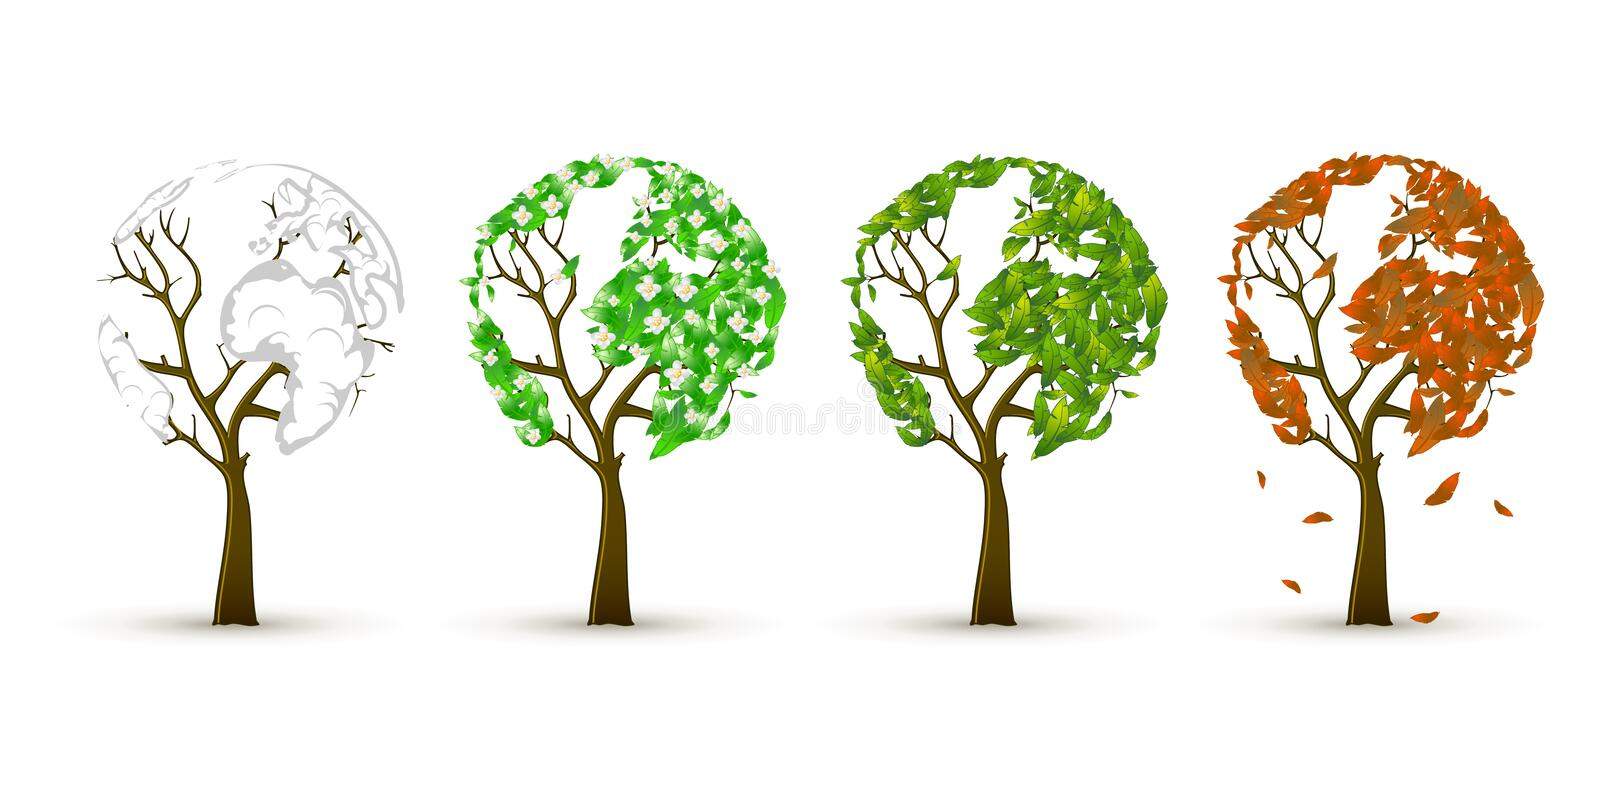 Download Season trees stock vector. Image of color, ecology, collection - 11716889